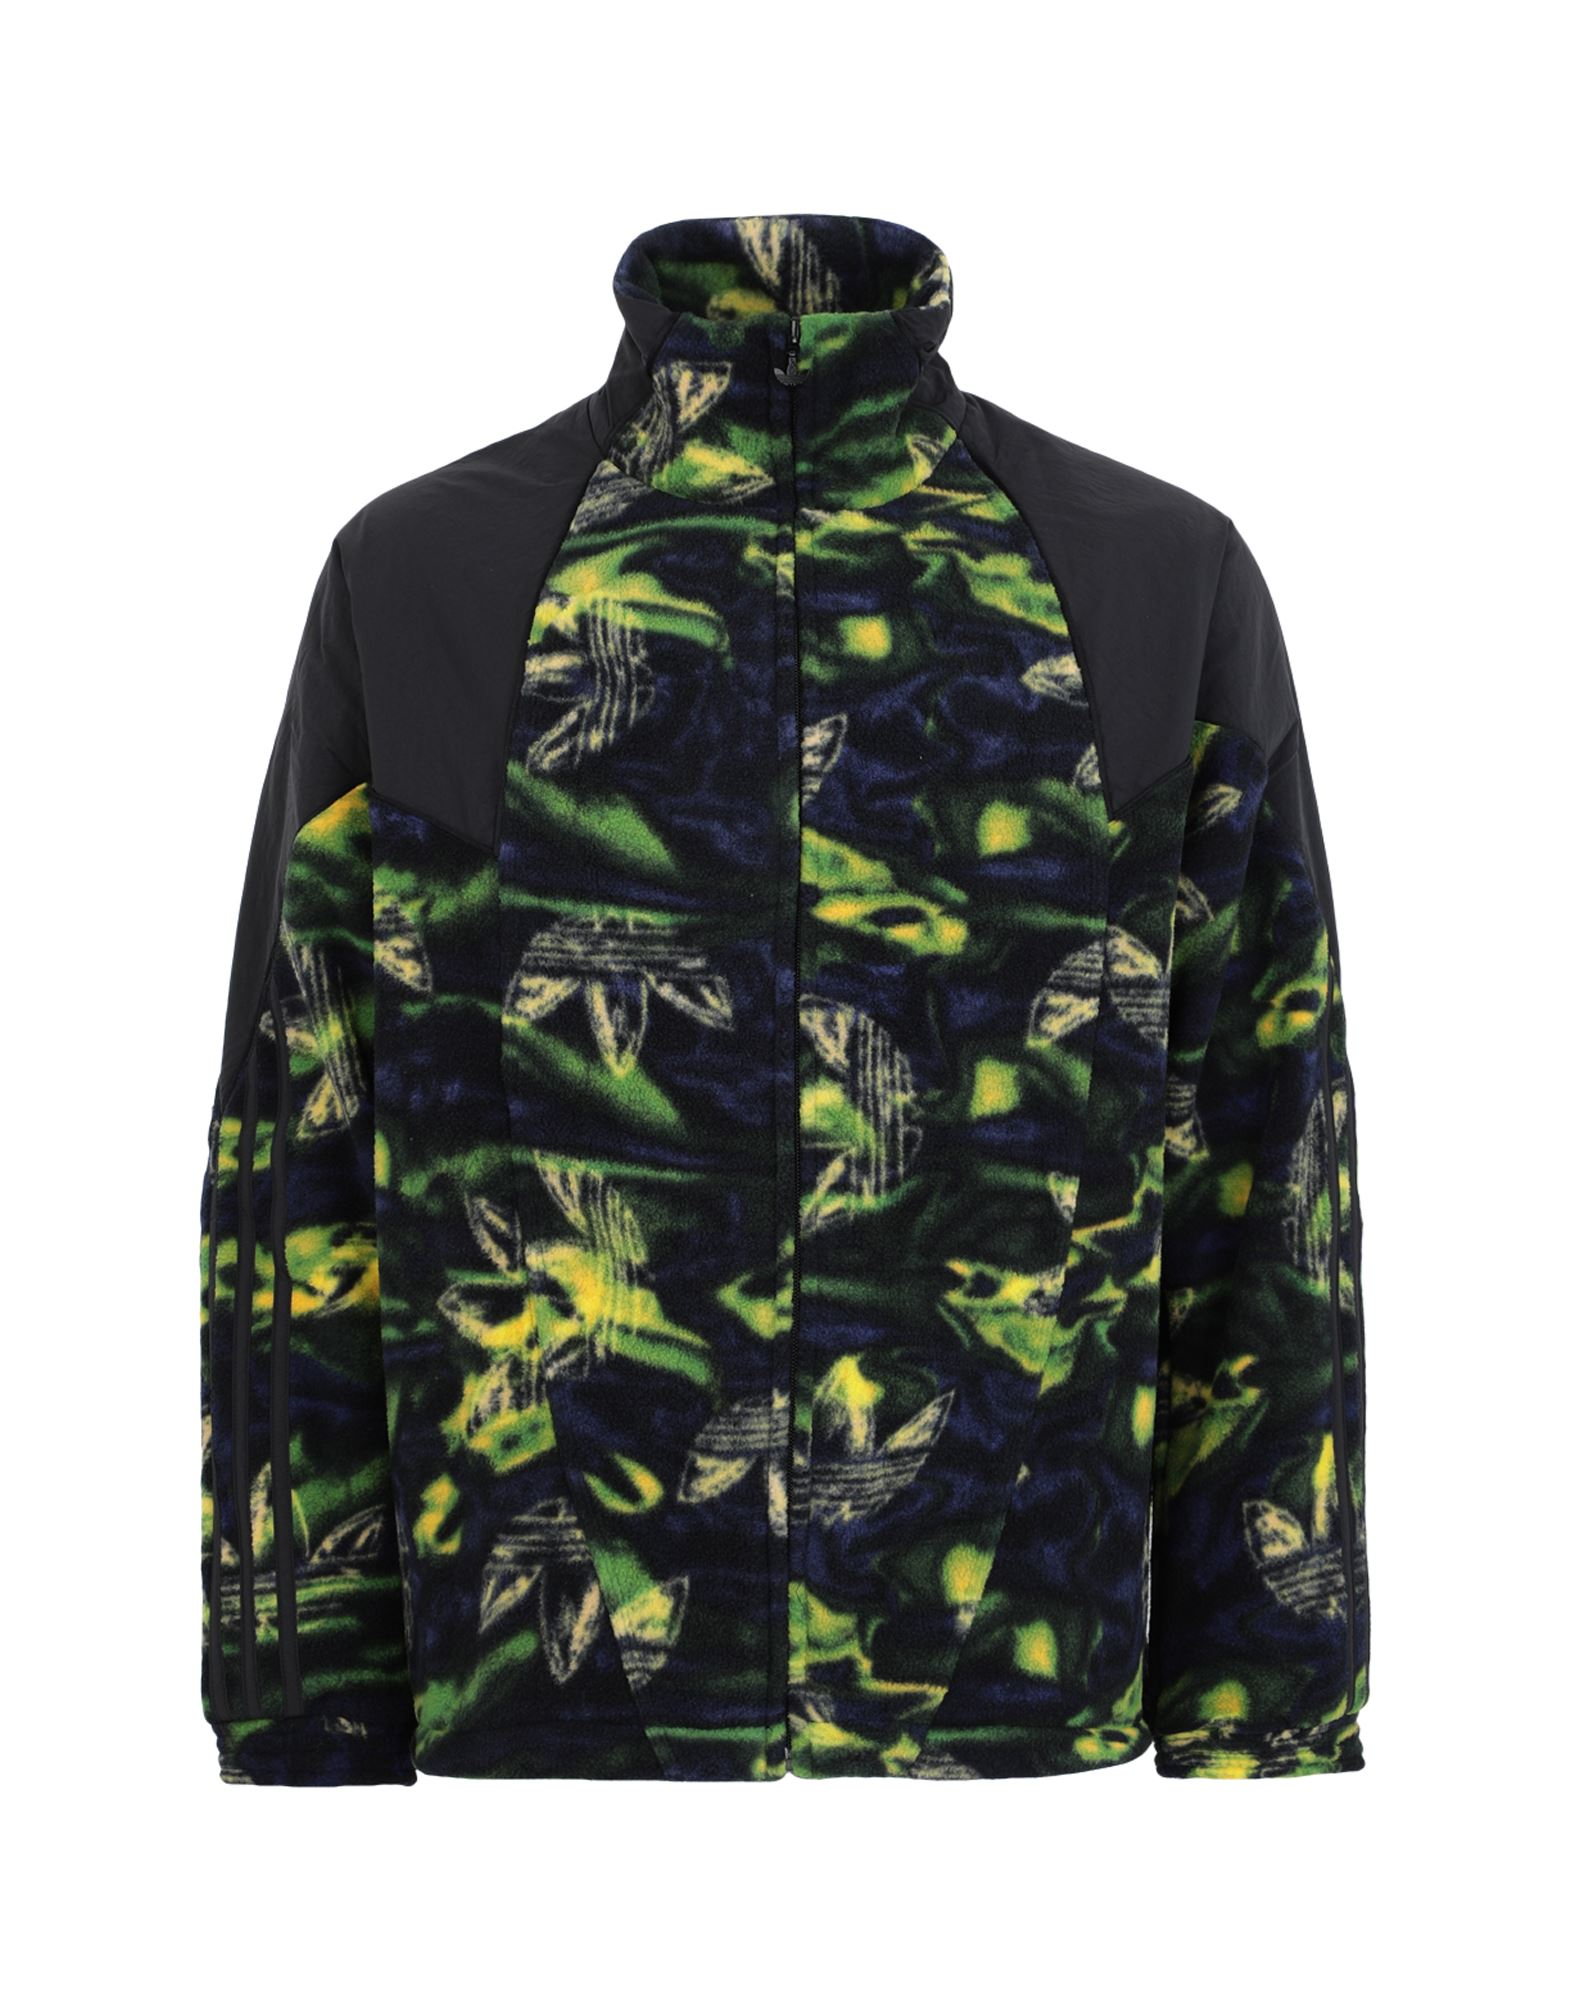 ADIDAS ORIGINALS Jackets - Item 16012059